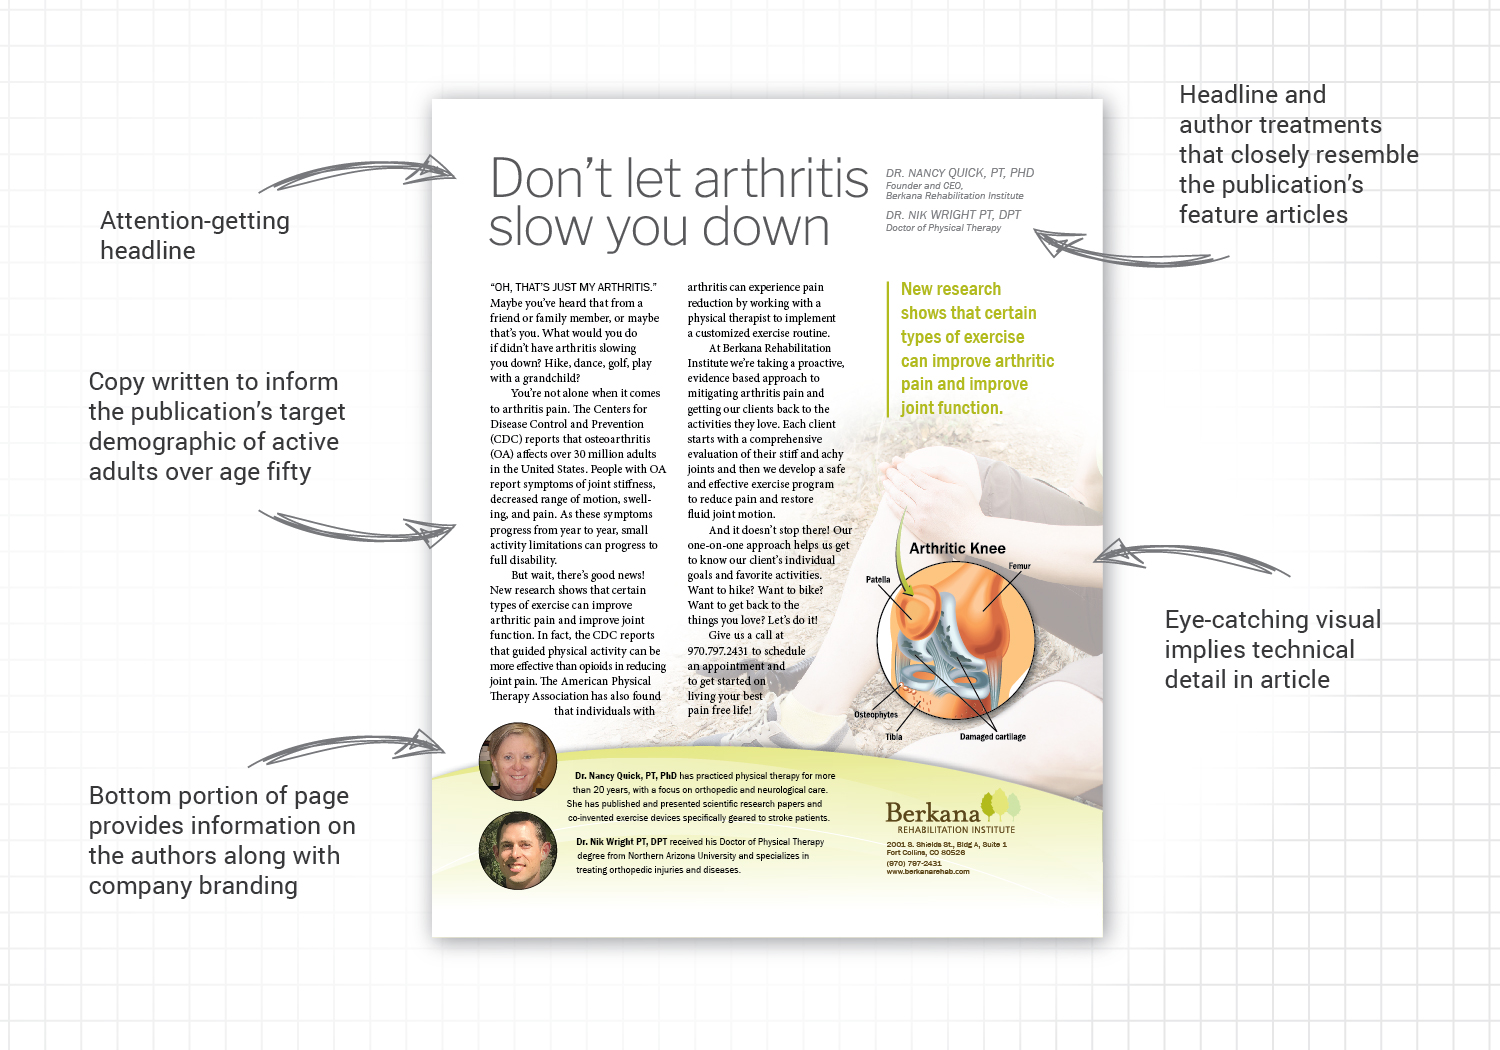 Anatomy of the Knee Pain Advertorial for  Berkana Rehabilitation Institute